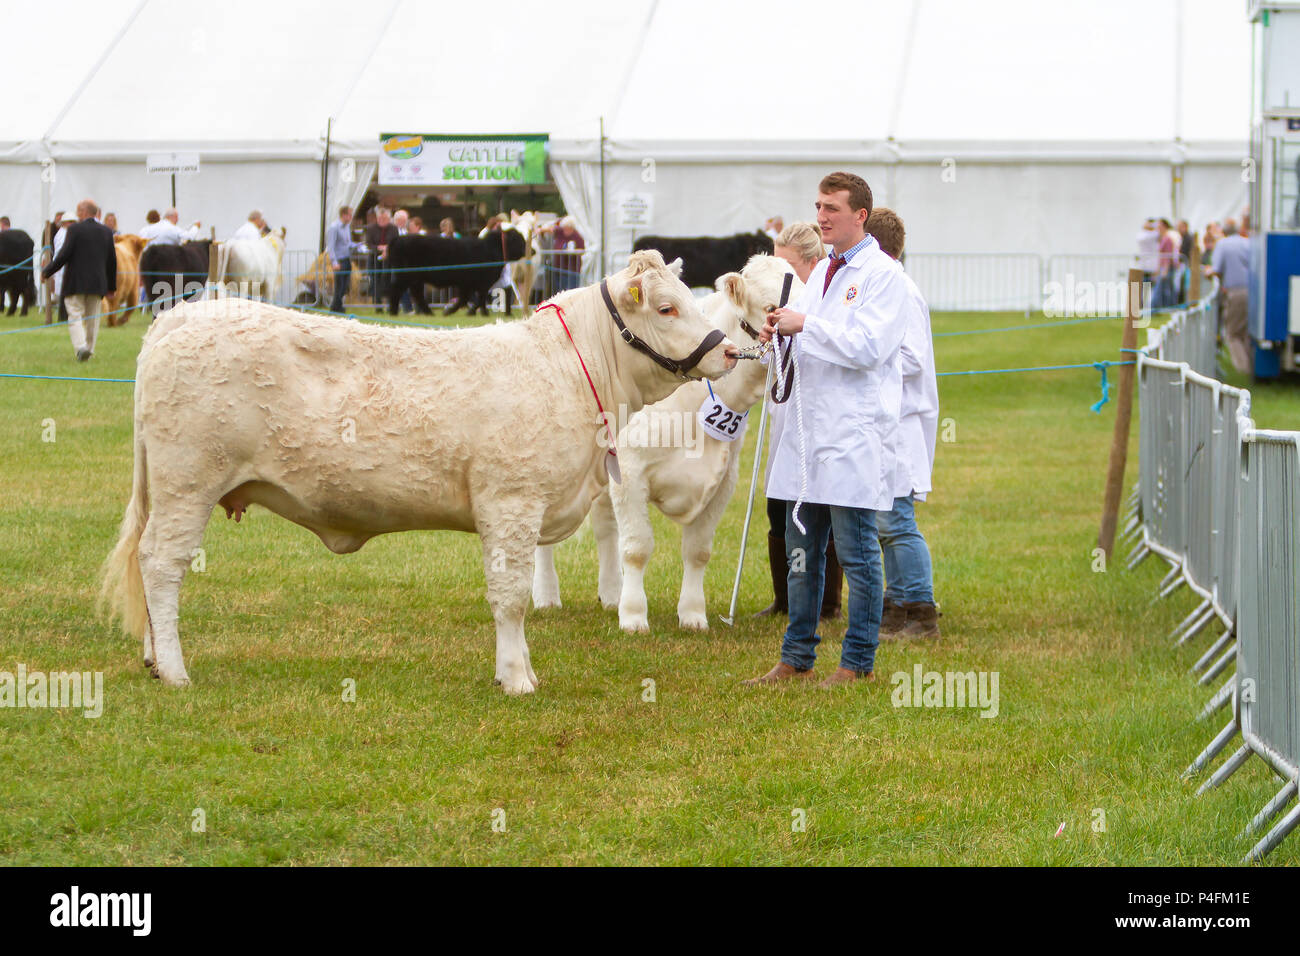 19 & 20 June 2018 - The Cheshire Showground at Clay House Farm Flittogate Lane, Knutsford hosted the 2018 Royal Cheshire County Show. The Show is abou - Stock Image